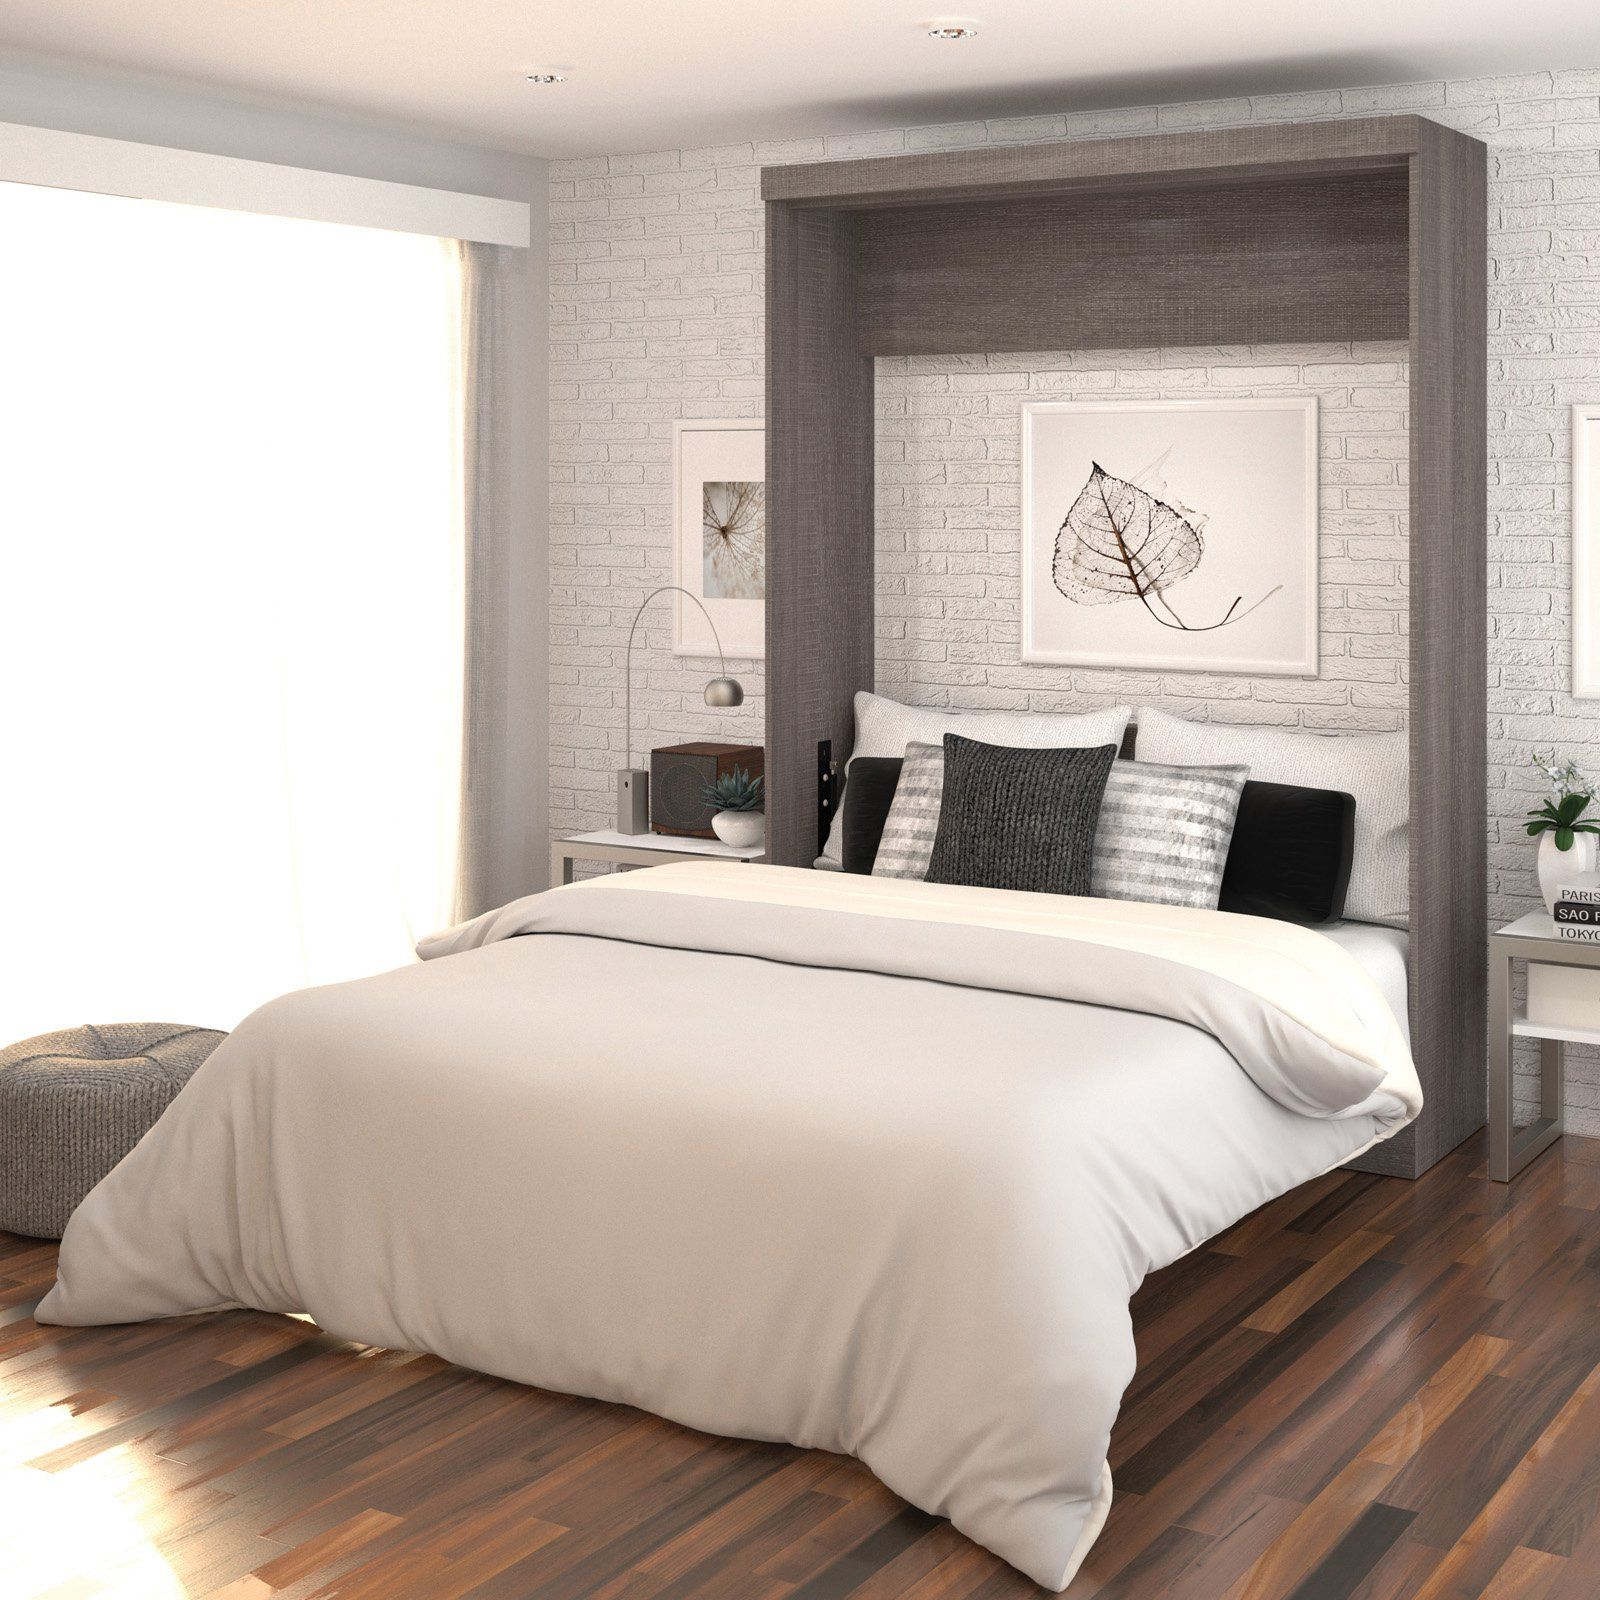 dimora bedroom set%0A Dimora White II   Pc  Queen Bedroom  Alternate    Value City Furniture    Apartment buying list   Pinterest   Italian style  Queen bedroom and City  furniture